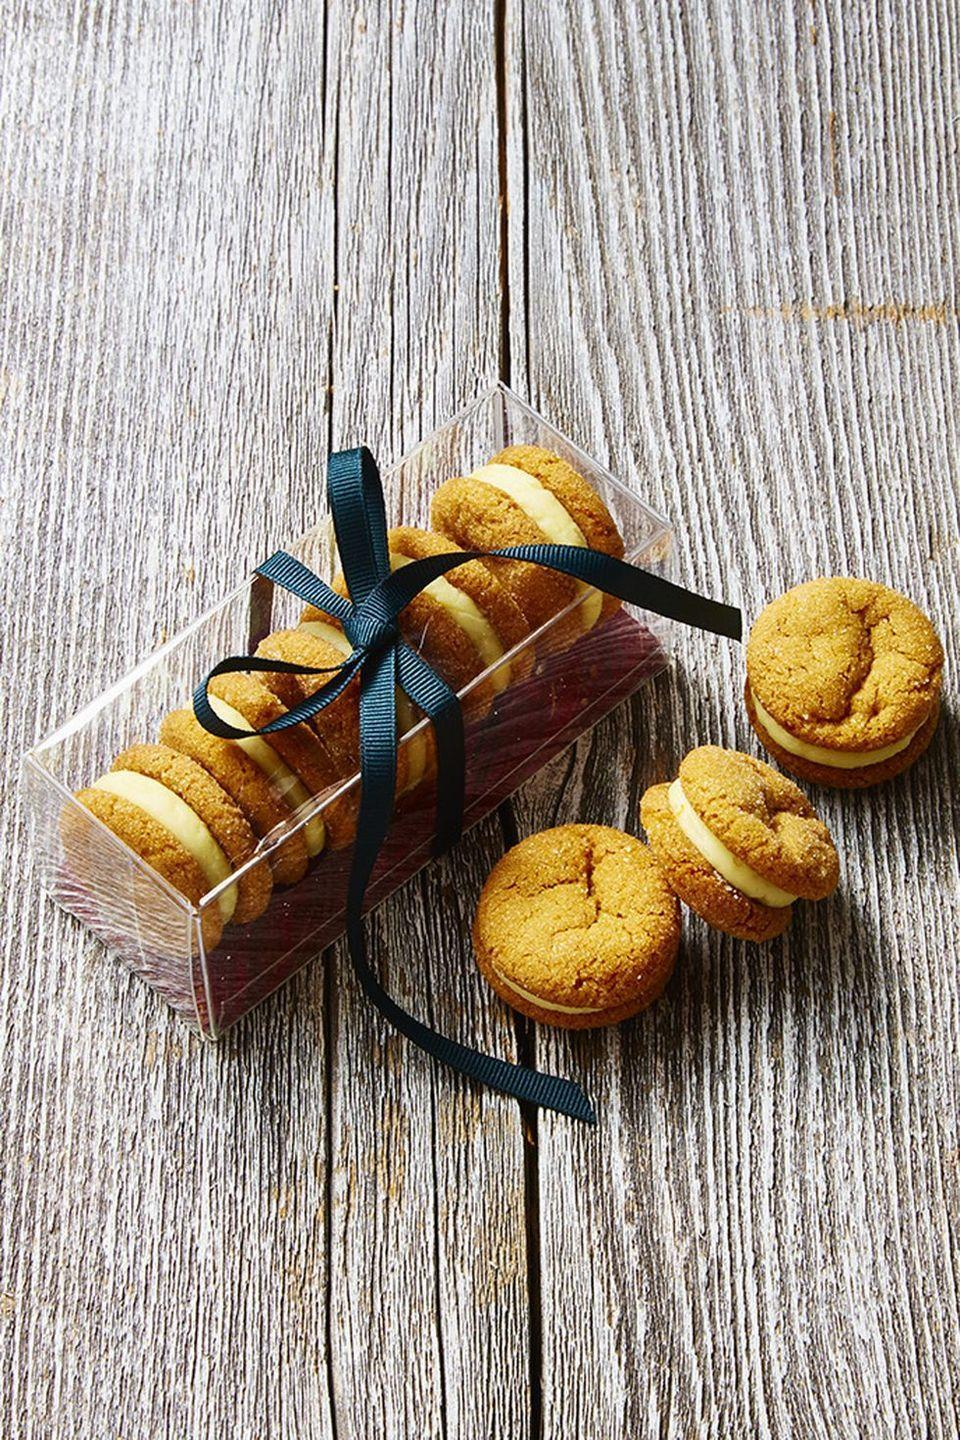 """<p>Bite into the new season with these spicy ginger and orange buttercream delights.</p><p><em><a href=""""https://www.goodhousekeeping.com/food-recipes/dessert/a46921/ginger-and-cream-sandwich-cookies-recipe/"""" rel=""""nofollow noopener"""" target=""""_blank"""" data-ylk=""""slk:Get the recipe for Ginger and Cream Sandwich Cookies »"""" class=""""link rapid-noclick-resp"""">Get the recipe for Ginger and Cream Sandwich Cookies »</a></em></p>"""